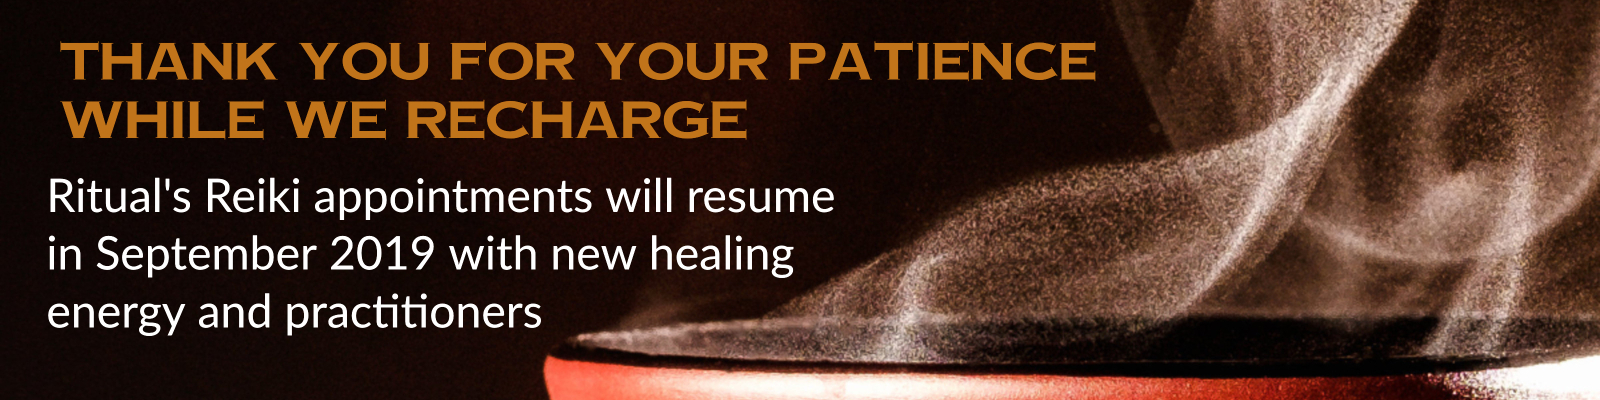 If you would like to schedule an appointment for September, please call (520) 422 - 2642. Thank you for your understanding and patience while we recharge our healing energy.